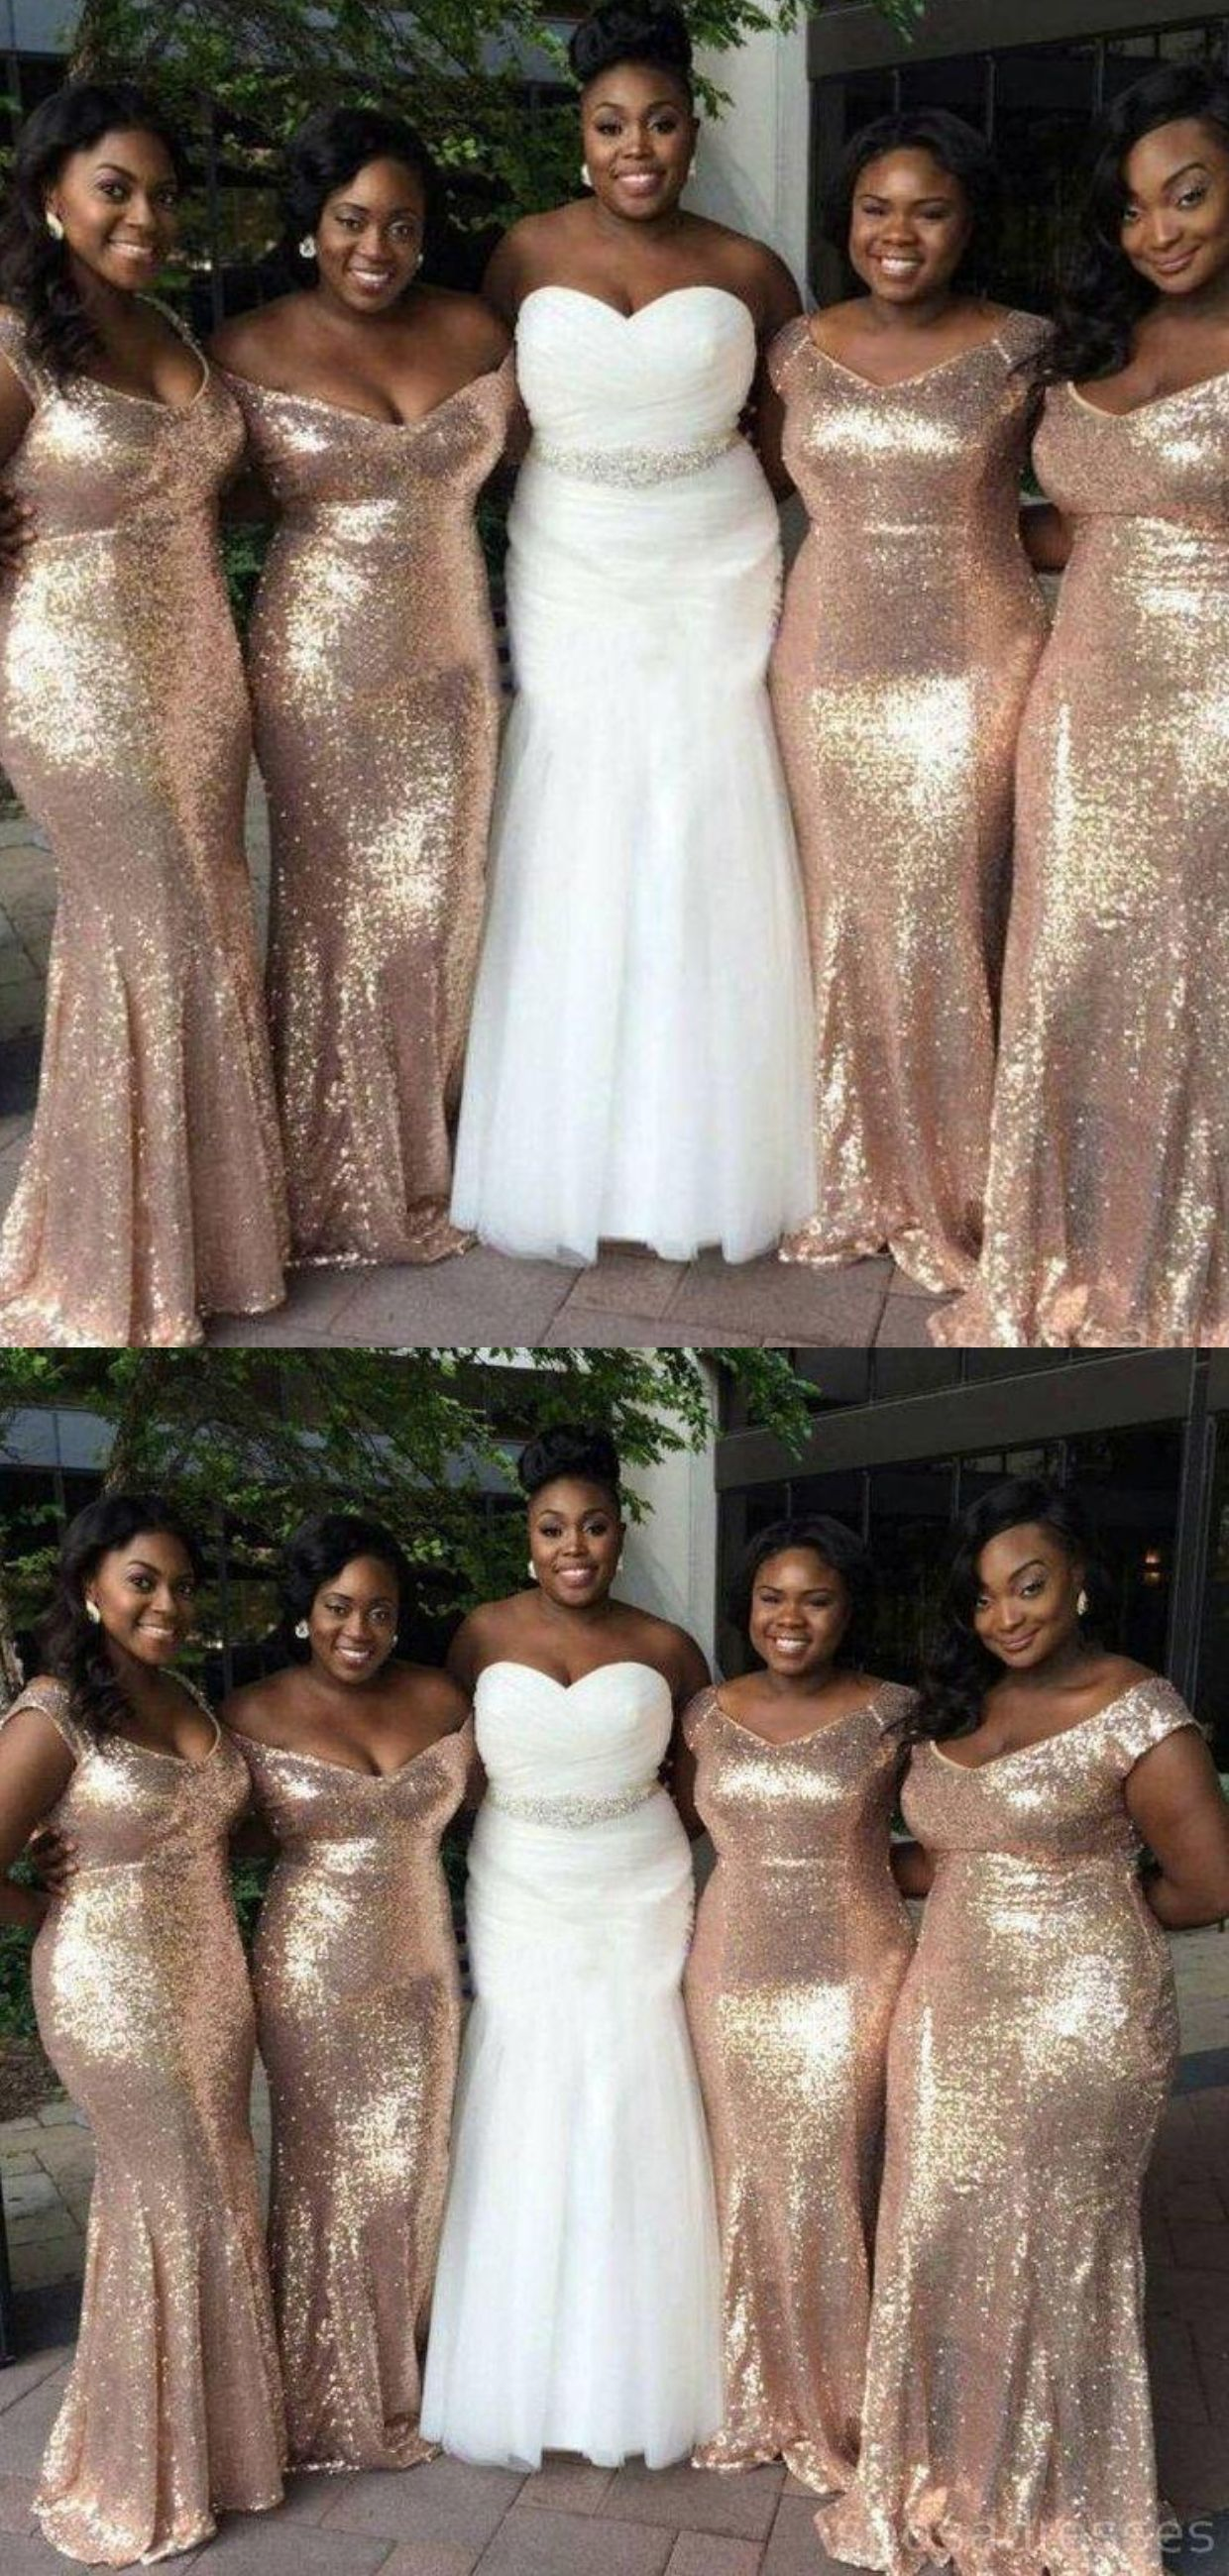 Sparkly Gold Sequin Mismatched Custom Long Bridesmaid Dresses Bd114 Beach Wedding Gown Mermaid Bridesmaid Dresses Bridesmaid Dresses 2018 [ 2600 x 1240 Pixel ]